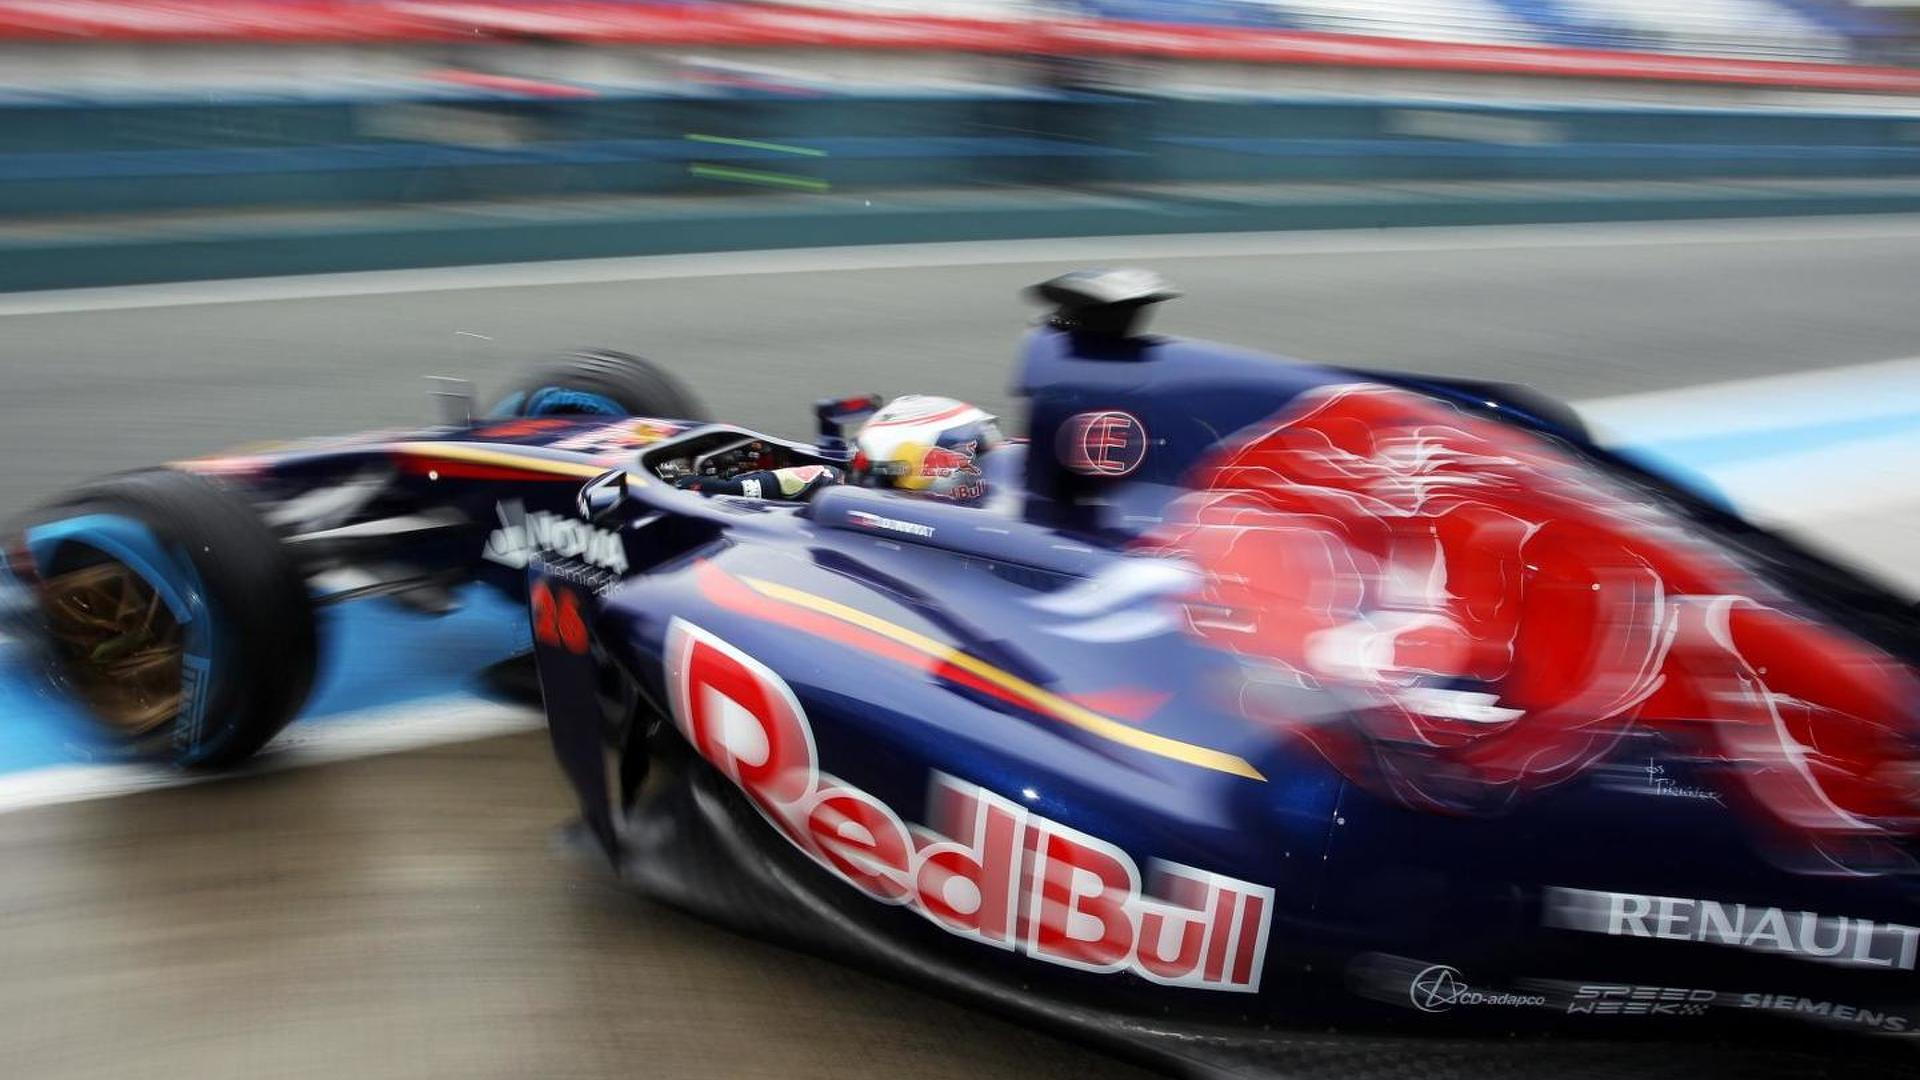 More Renault trouble for Toro Rosso at Misano